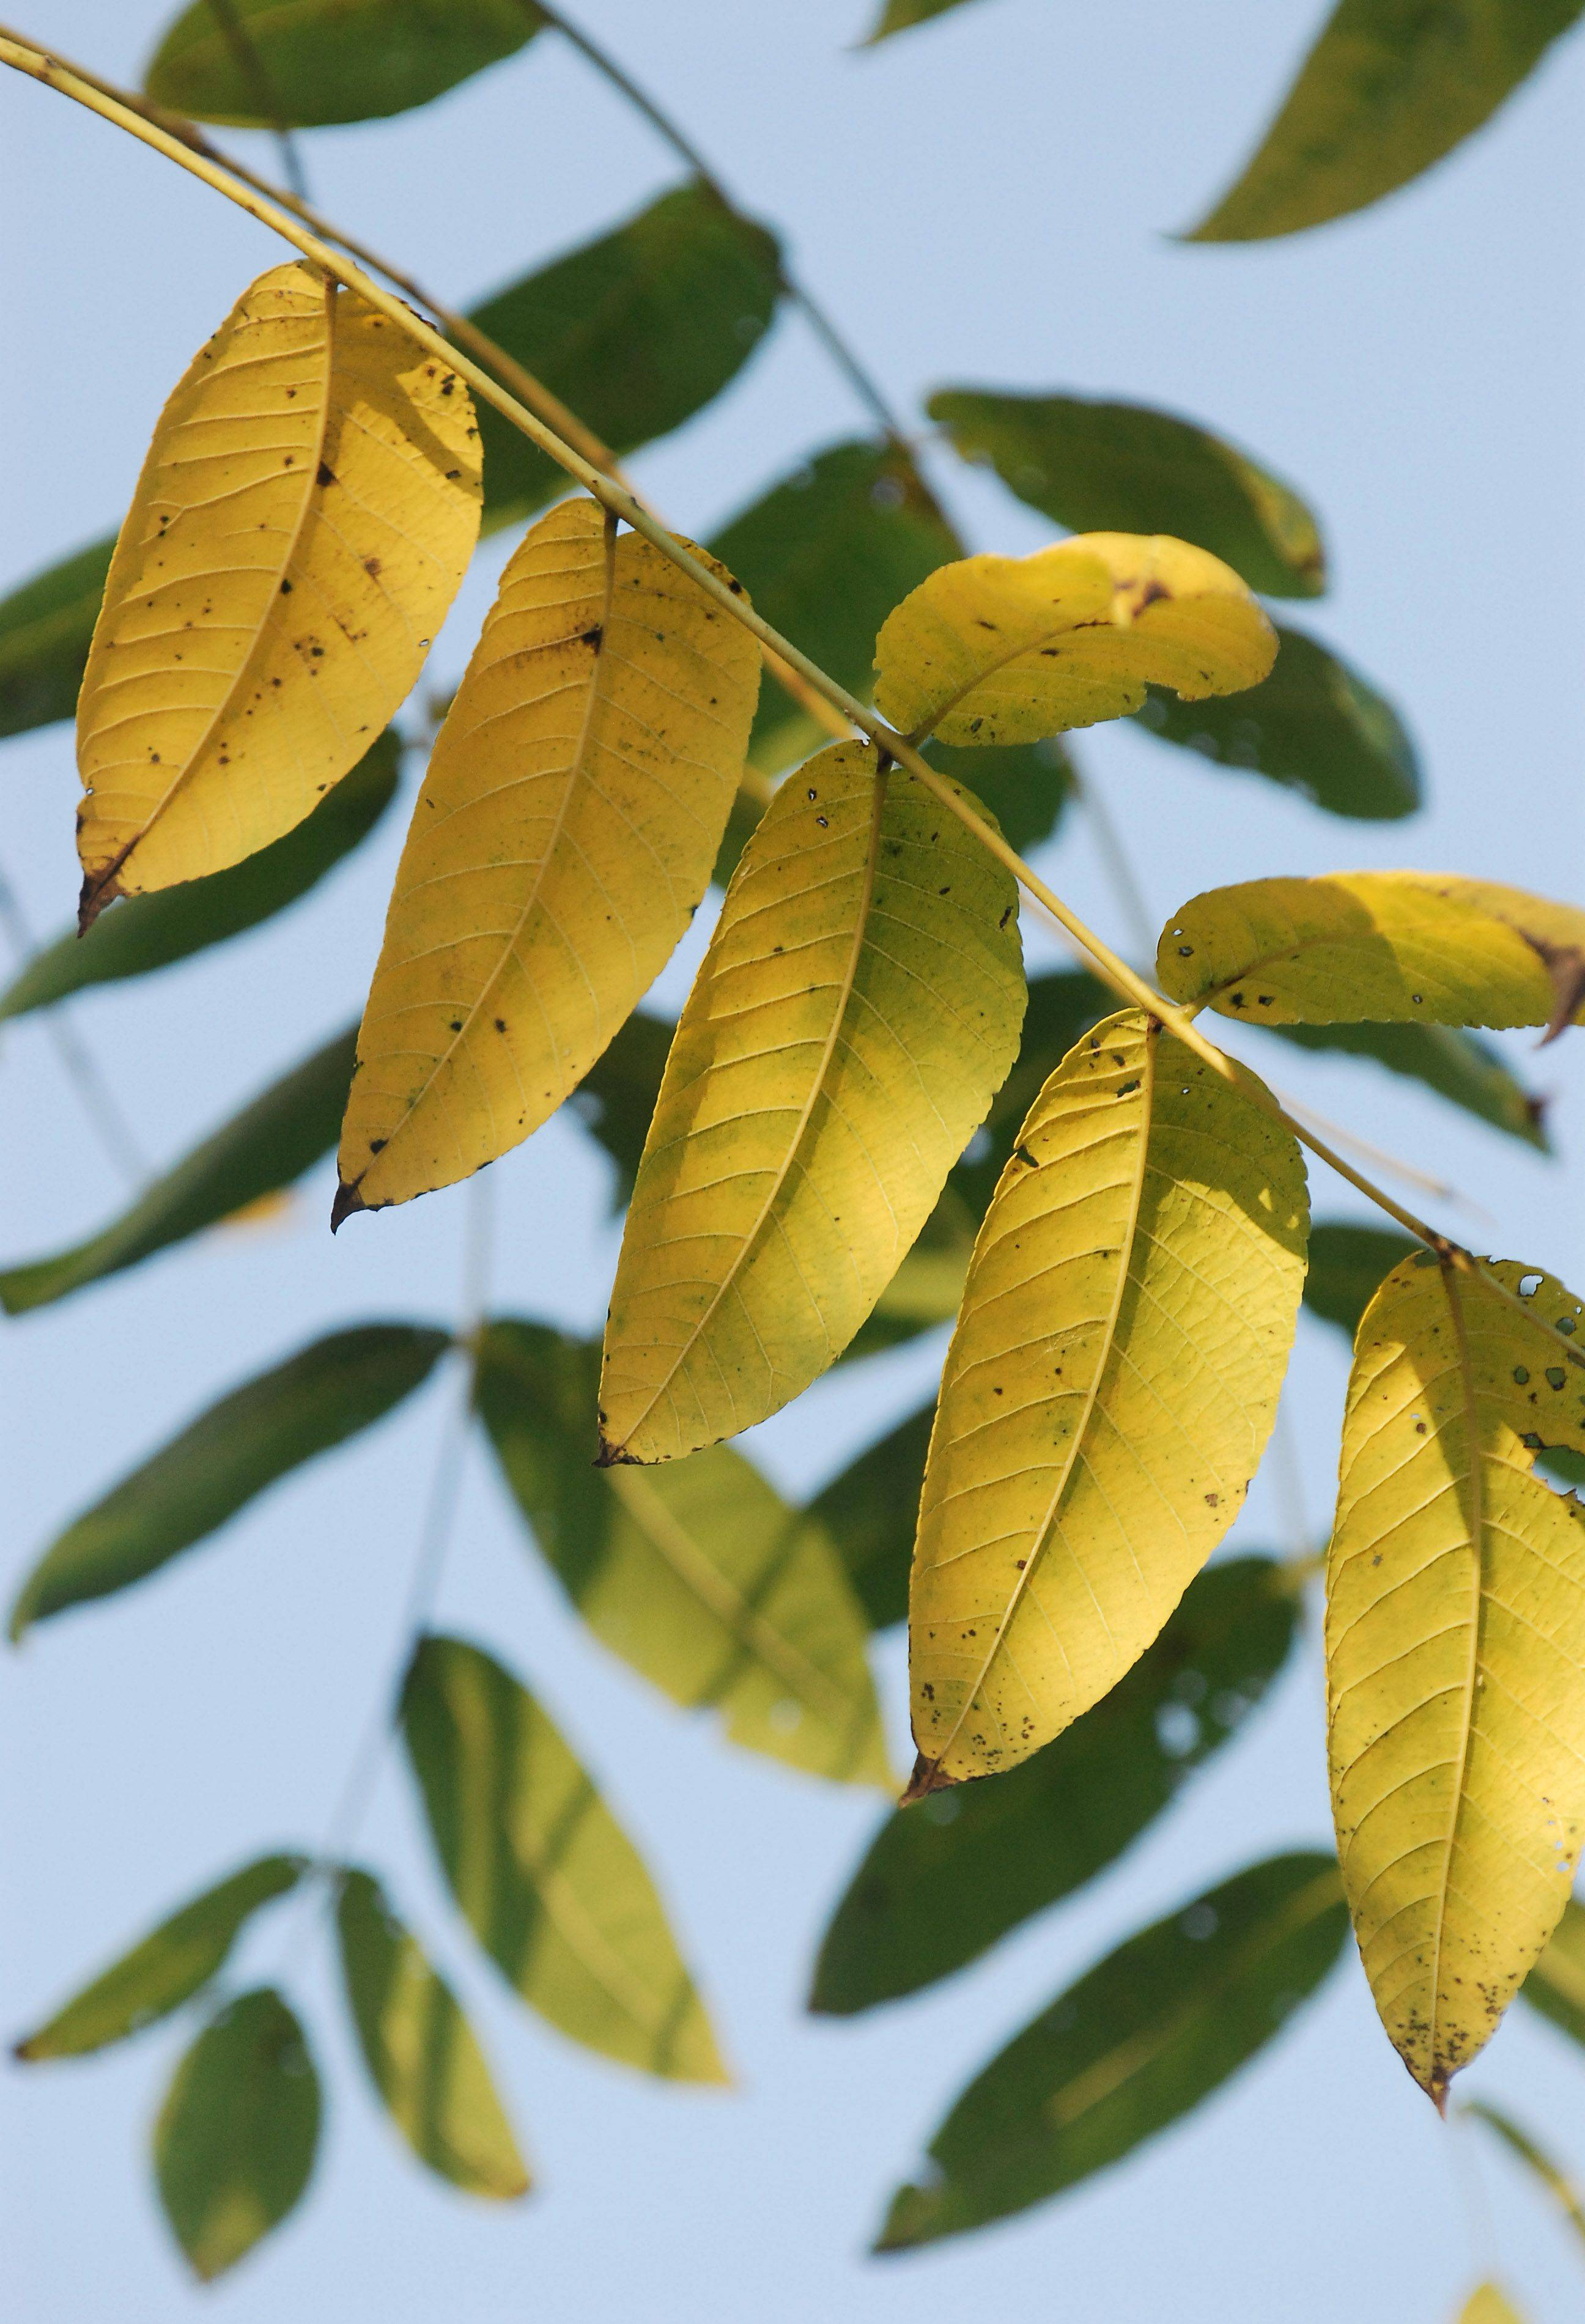 A few yellow leaves on a black walnut tree cling. Most black walnut trees have lost their fruit by now, and many have already lost their leaves. These leaves were clinging to the top branches and were the very last on the tree.